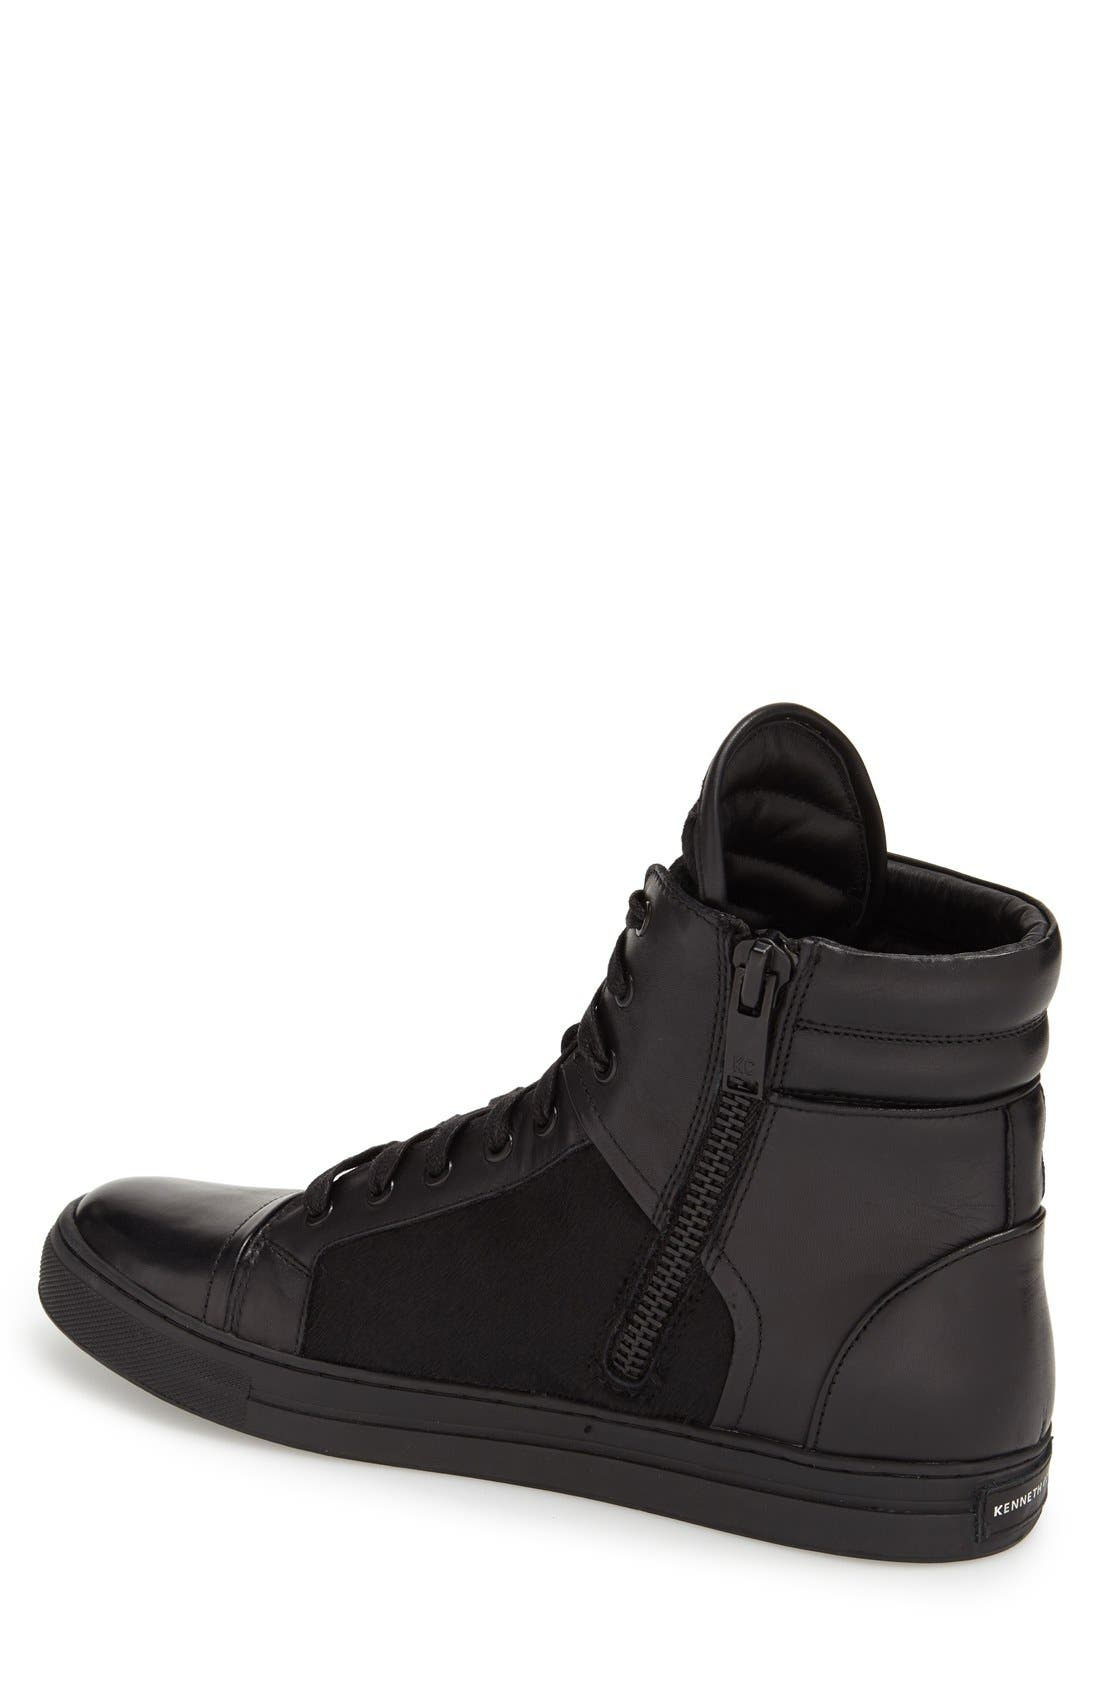 Alternate Image 2  - Kenneth Cole New York 'Double Over' Zip High Top Sneaker (Men)